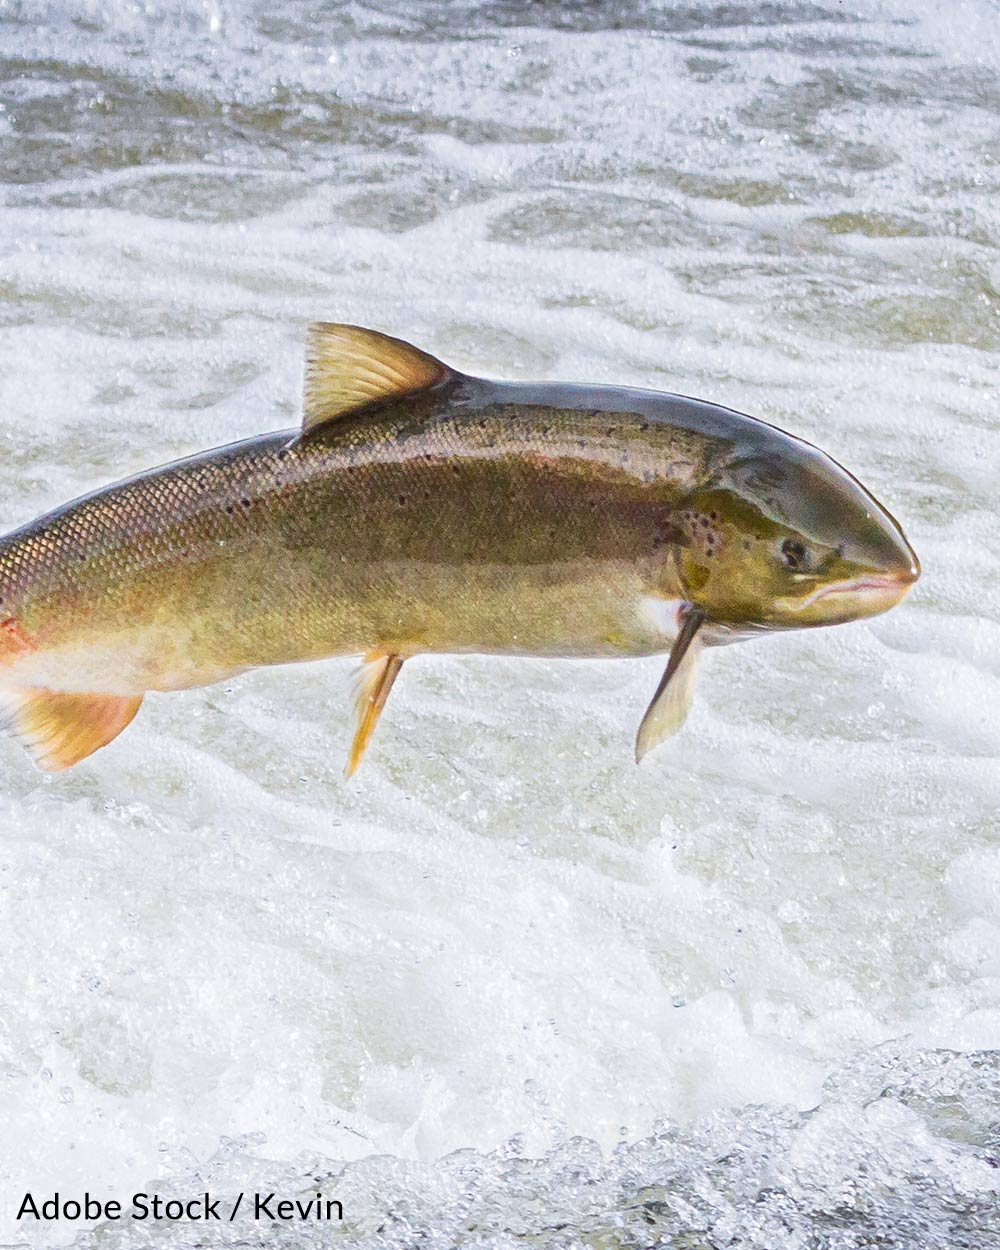 A US Court previously found the FDA's approval of genetically engineered salmon to be unlawful.